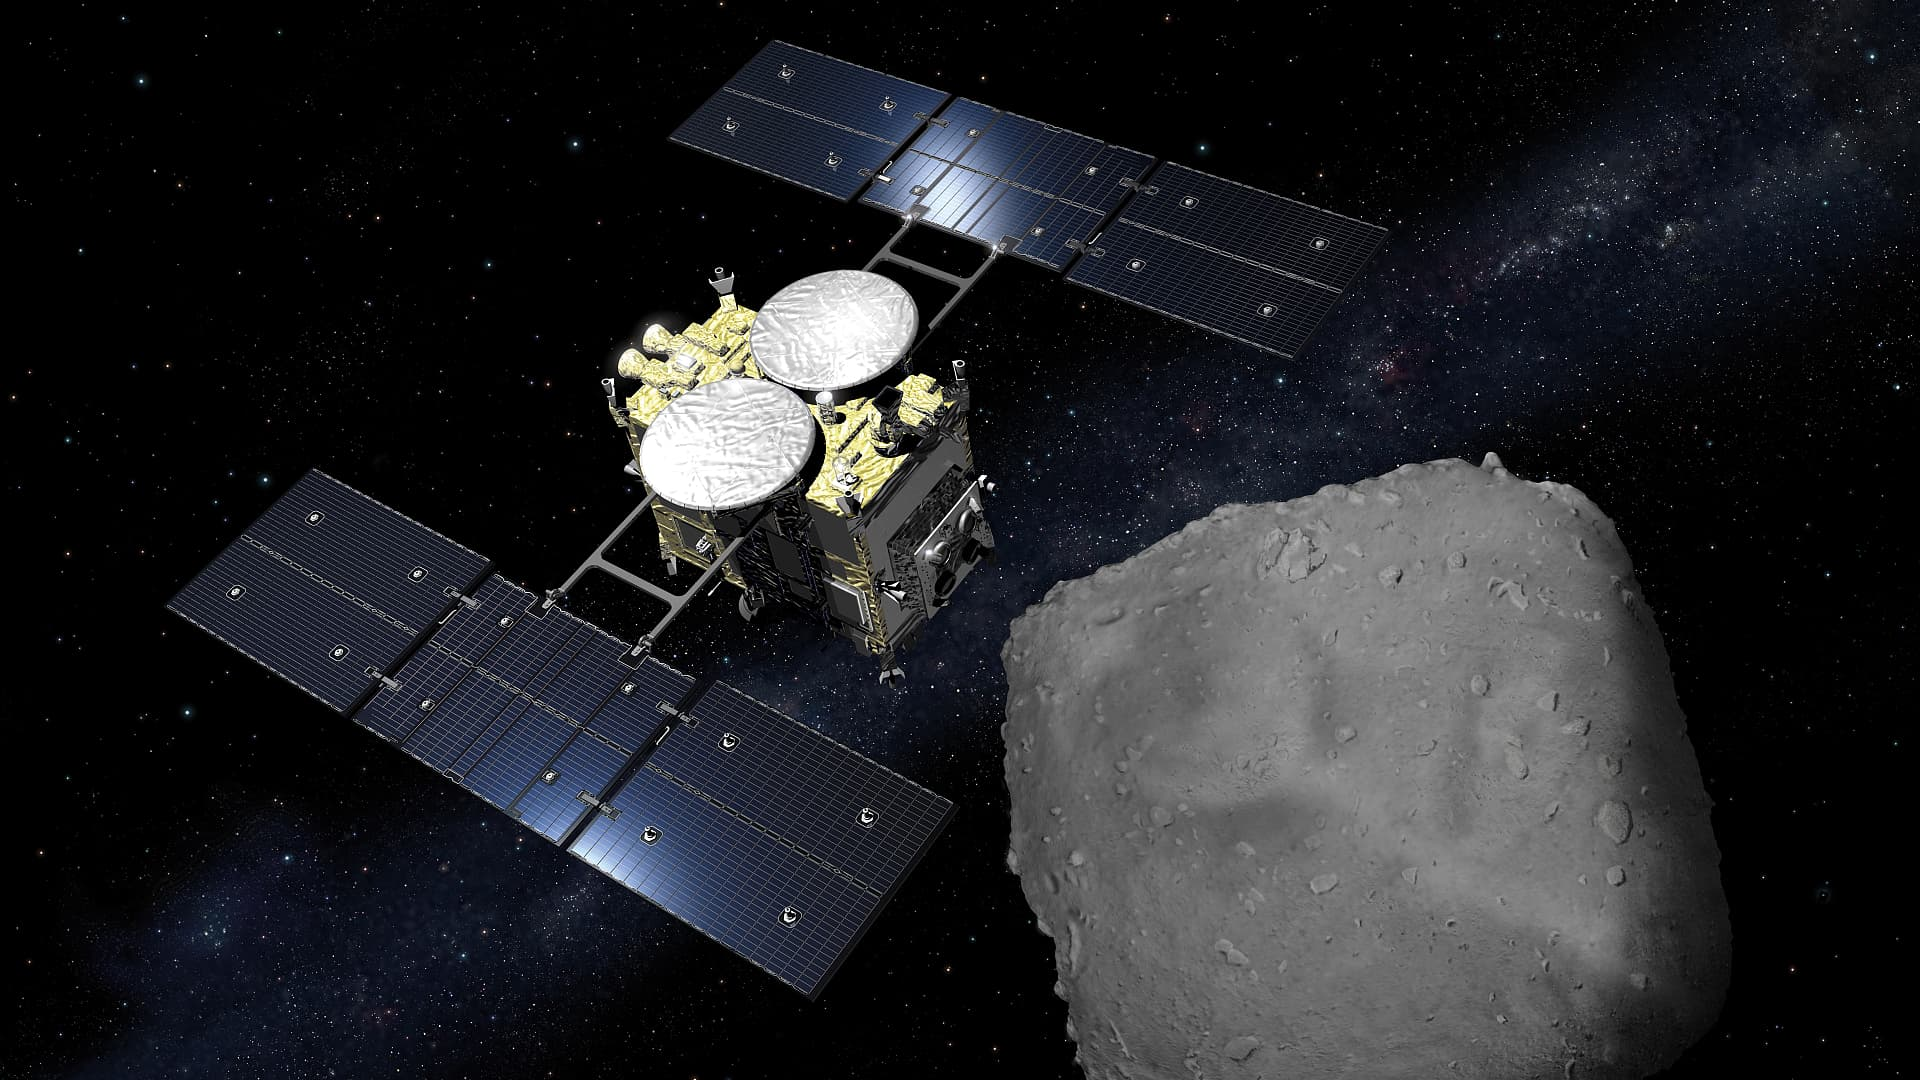 Hayabusa-2 brings in rocks and gas from extraterrestrials